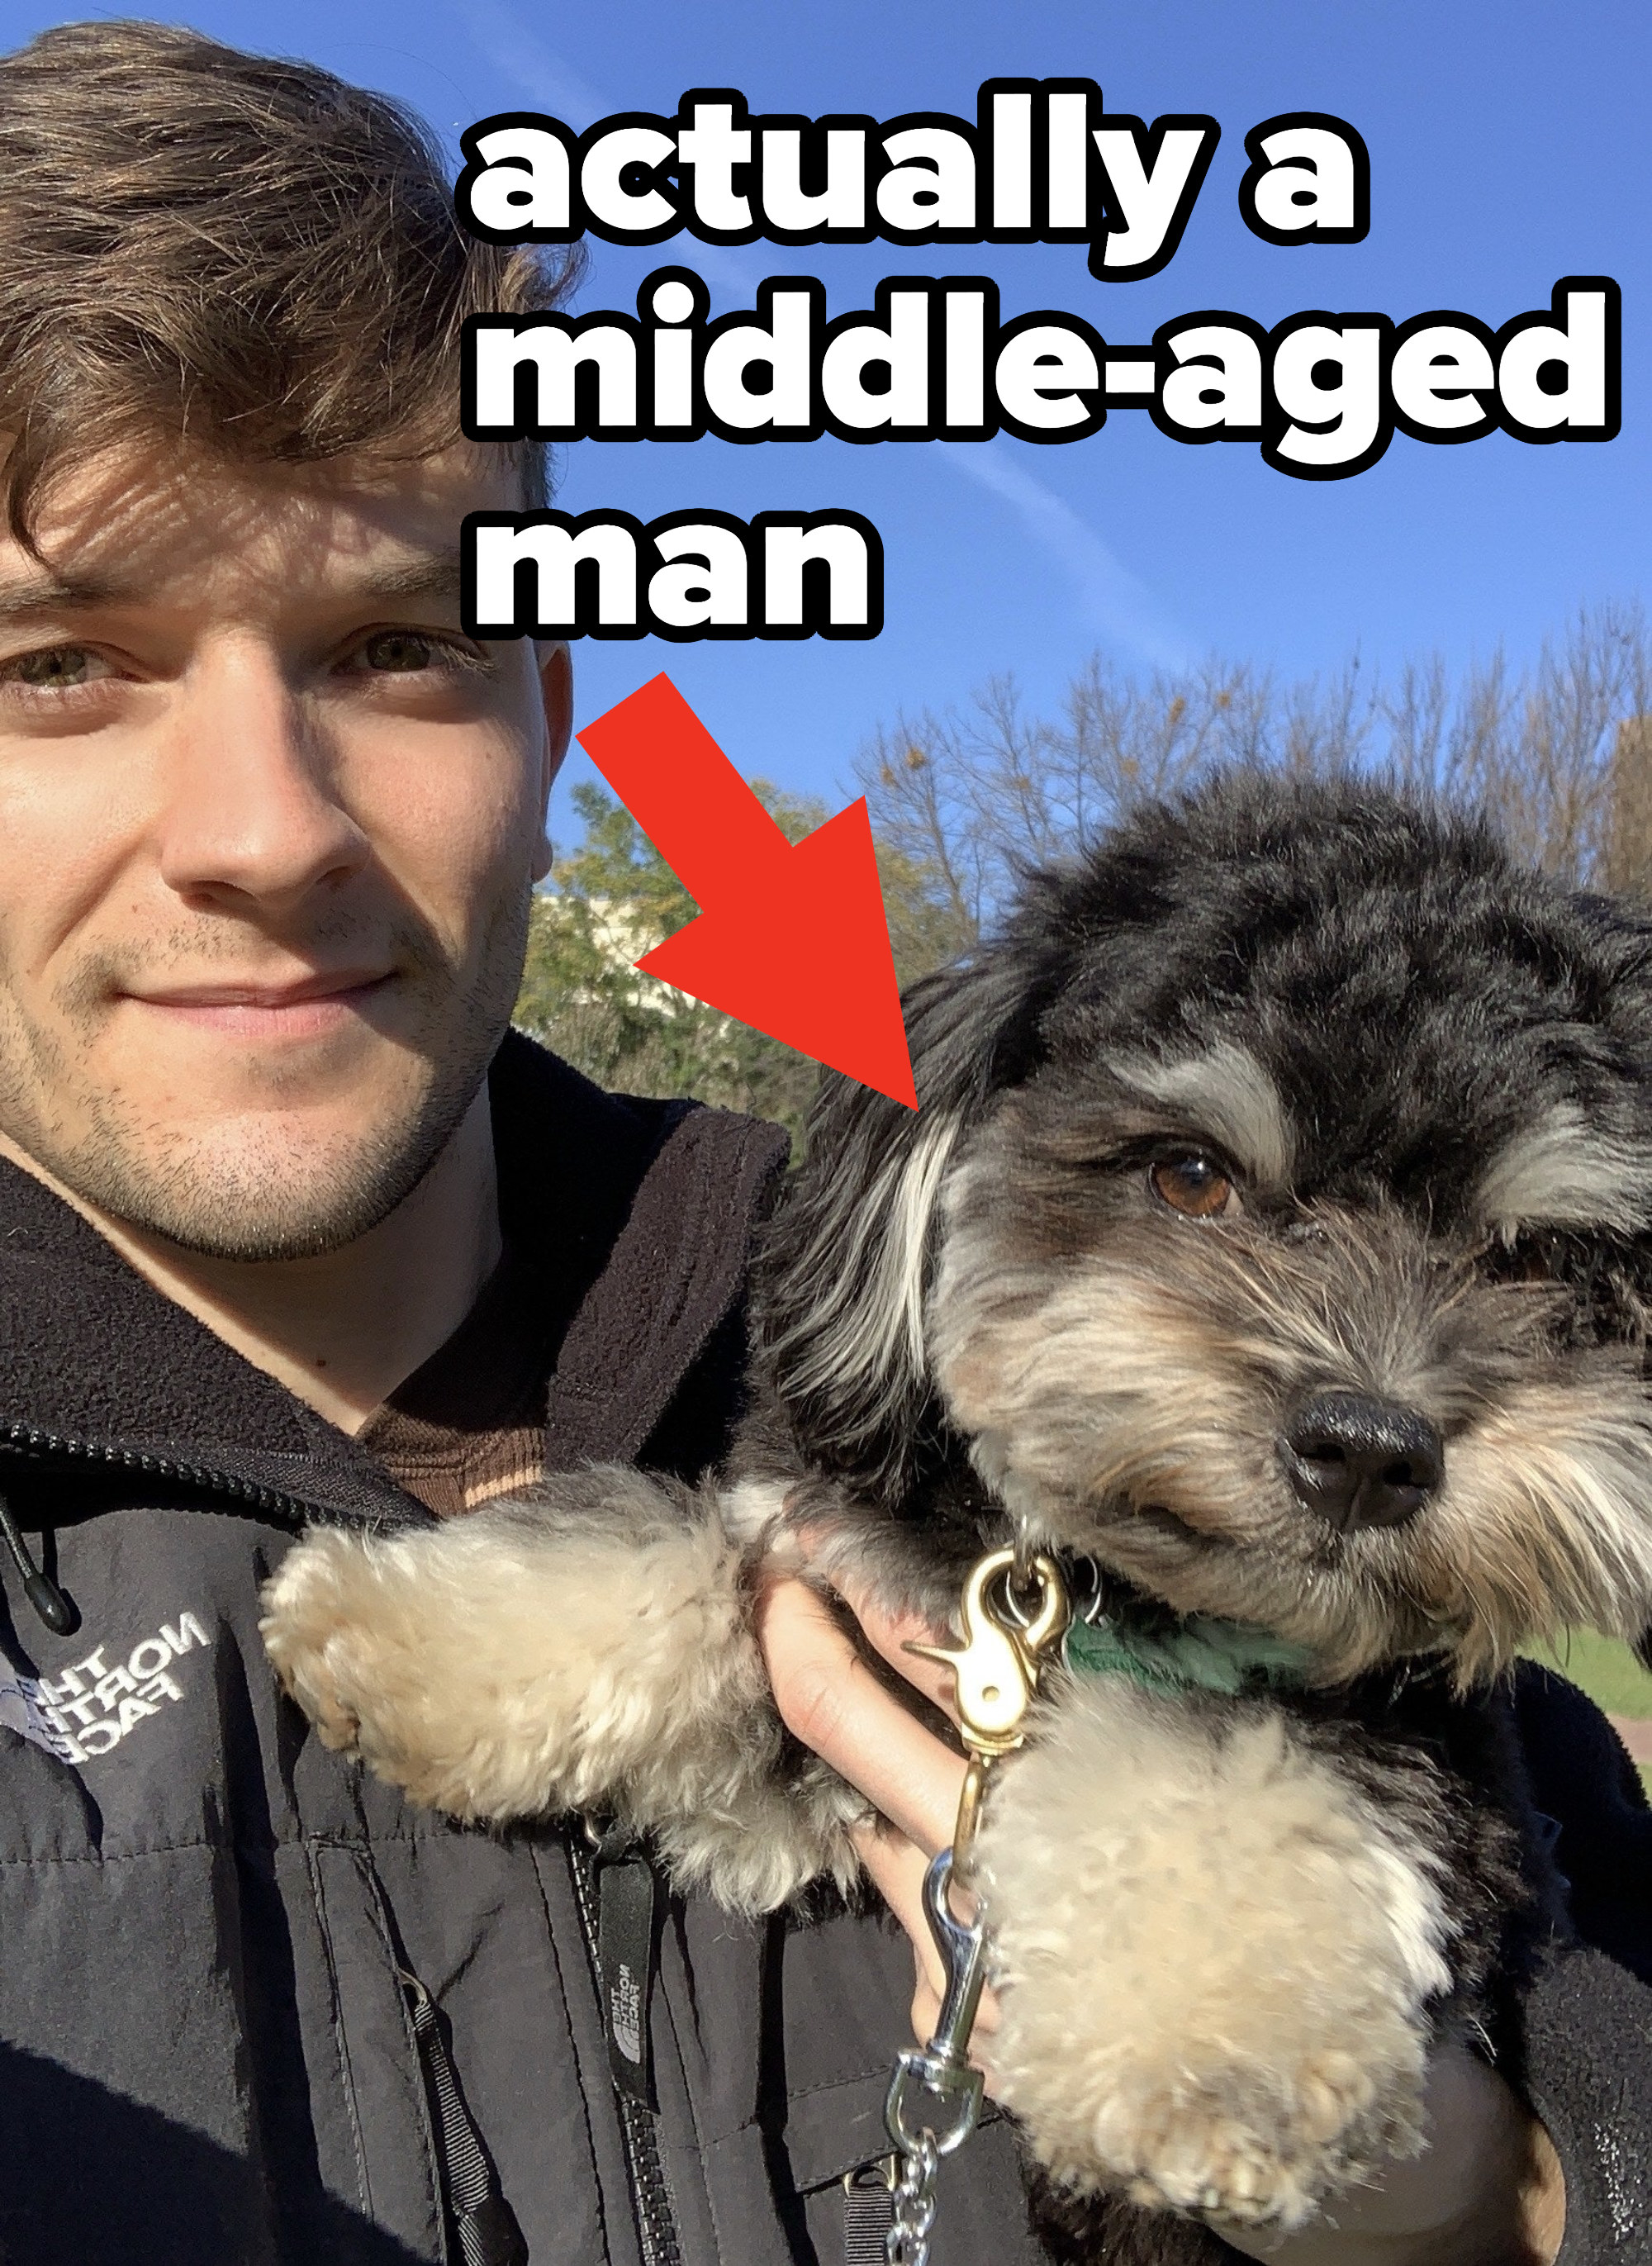 Stephen holding Cosmo with the caption 'actually a middle-aged man'